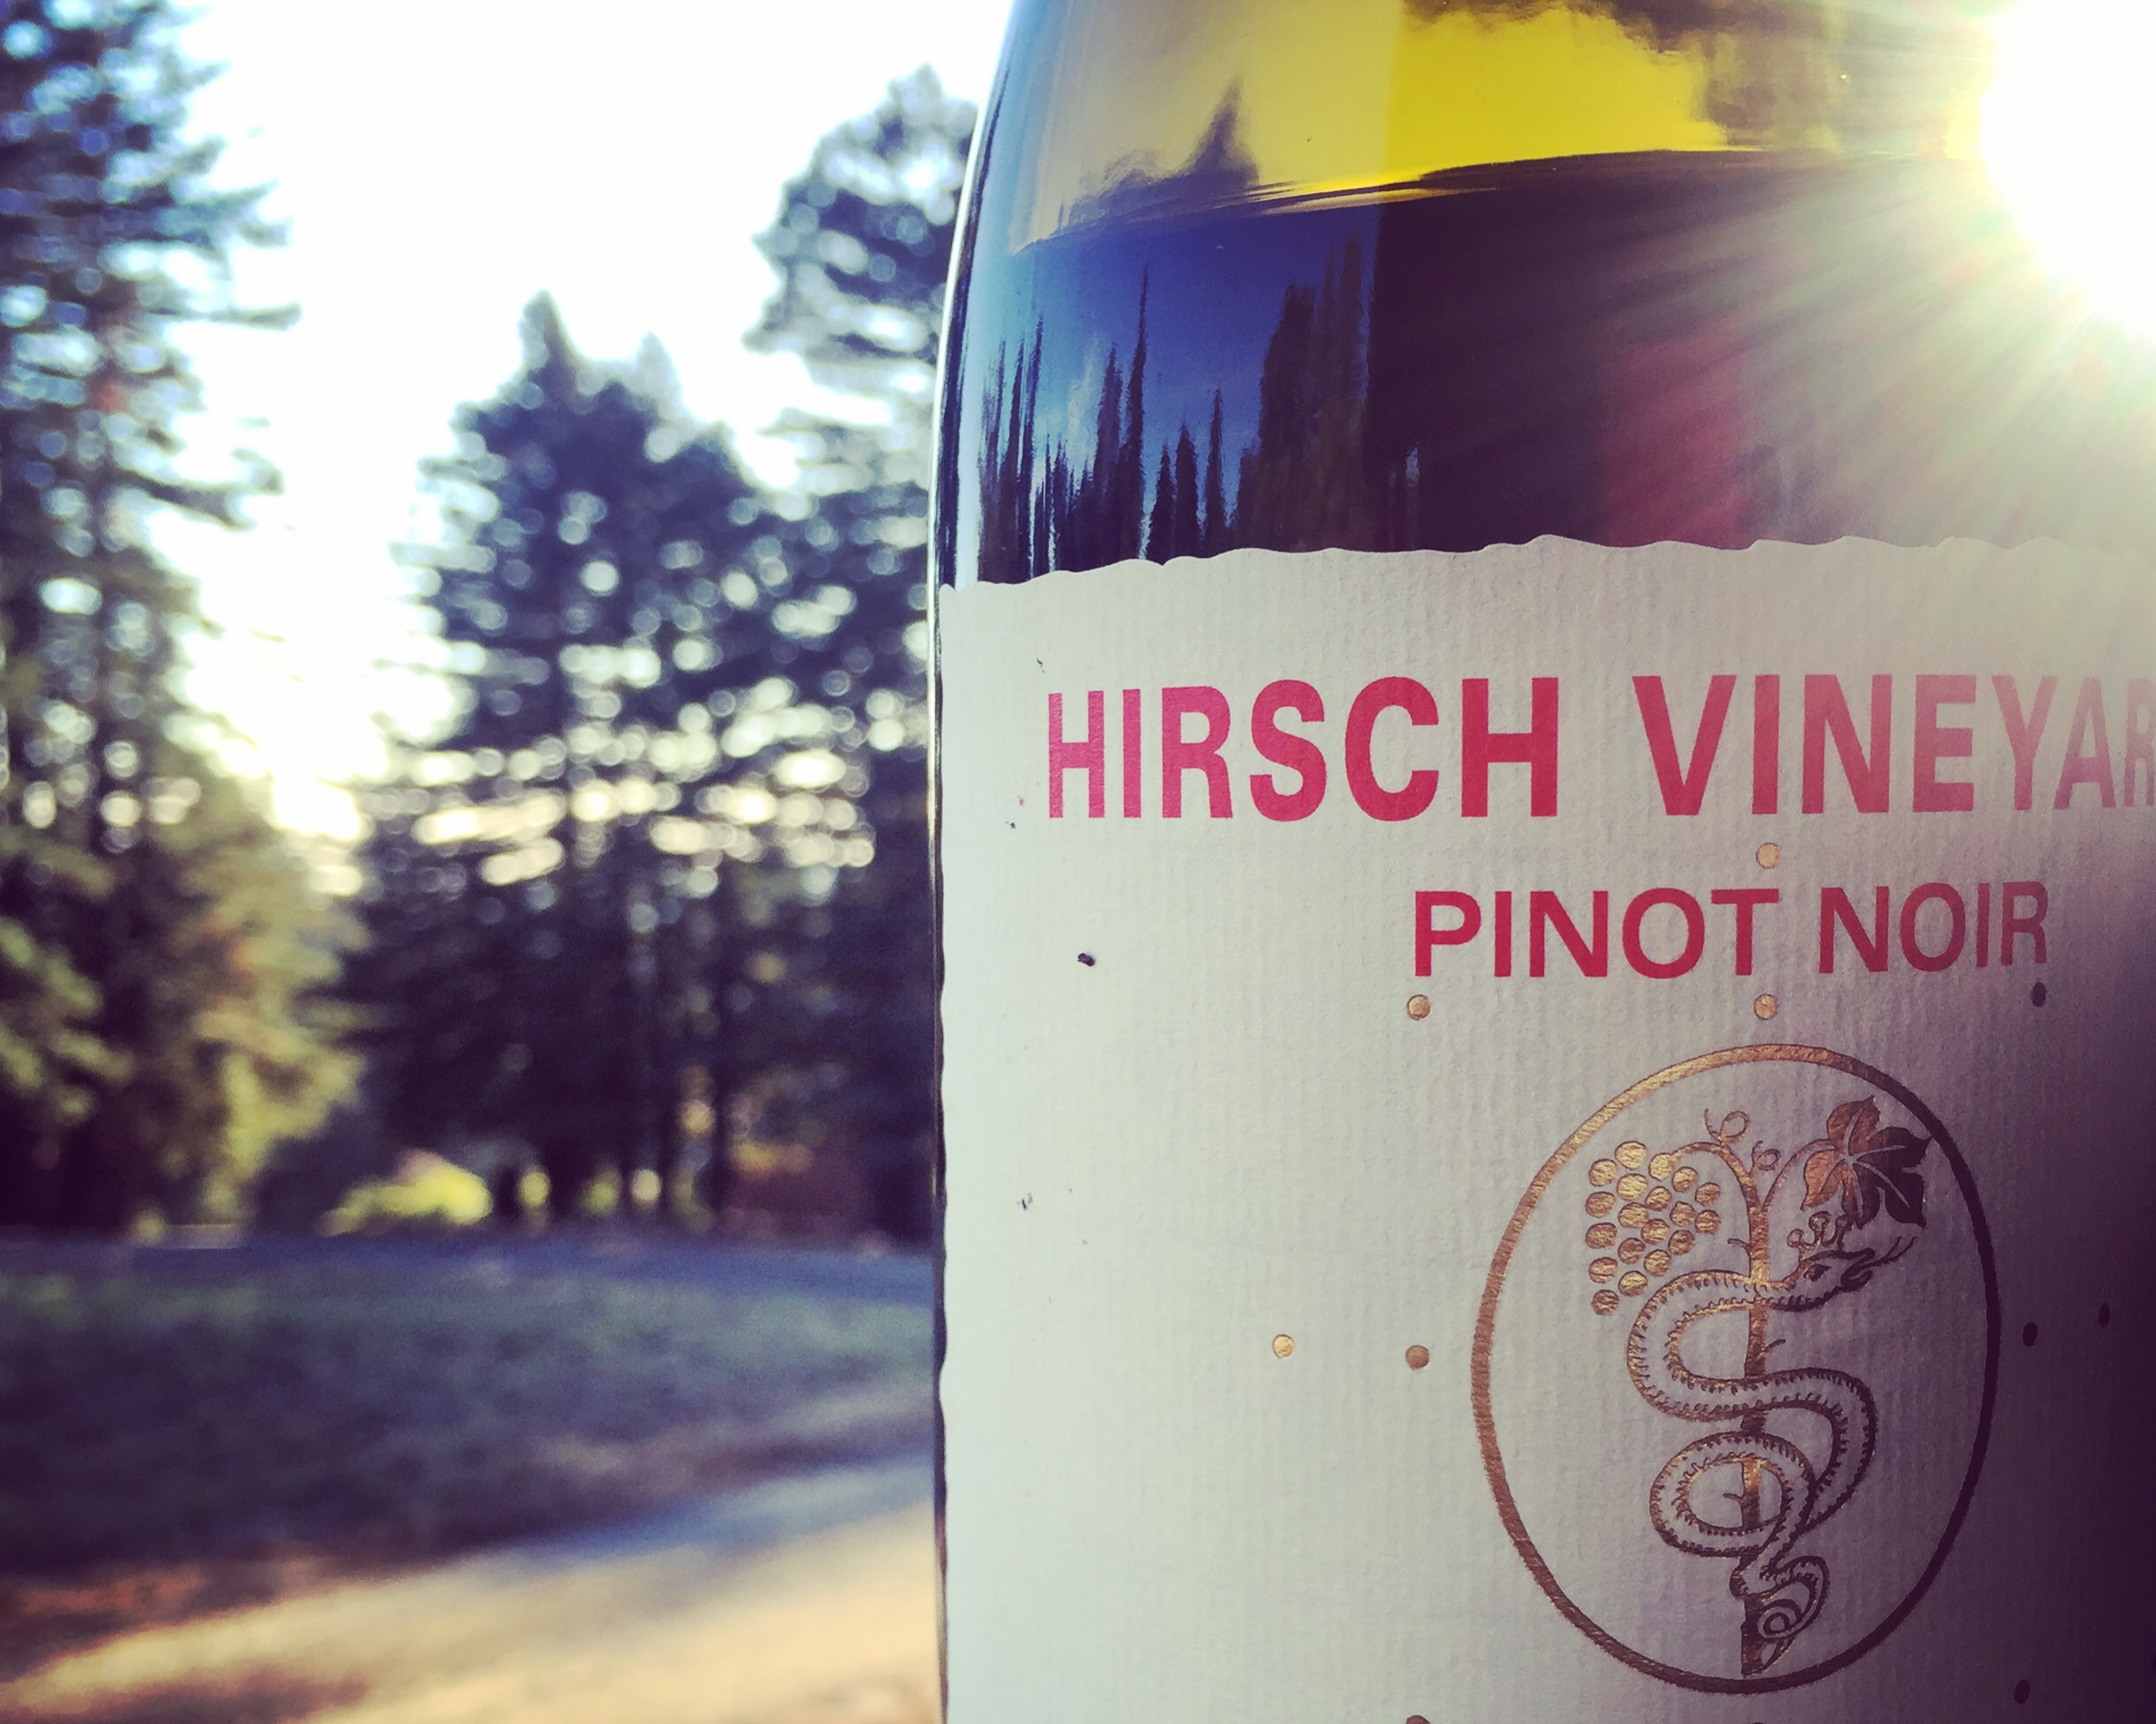 Foto: Hirsch Vineyards